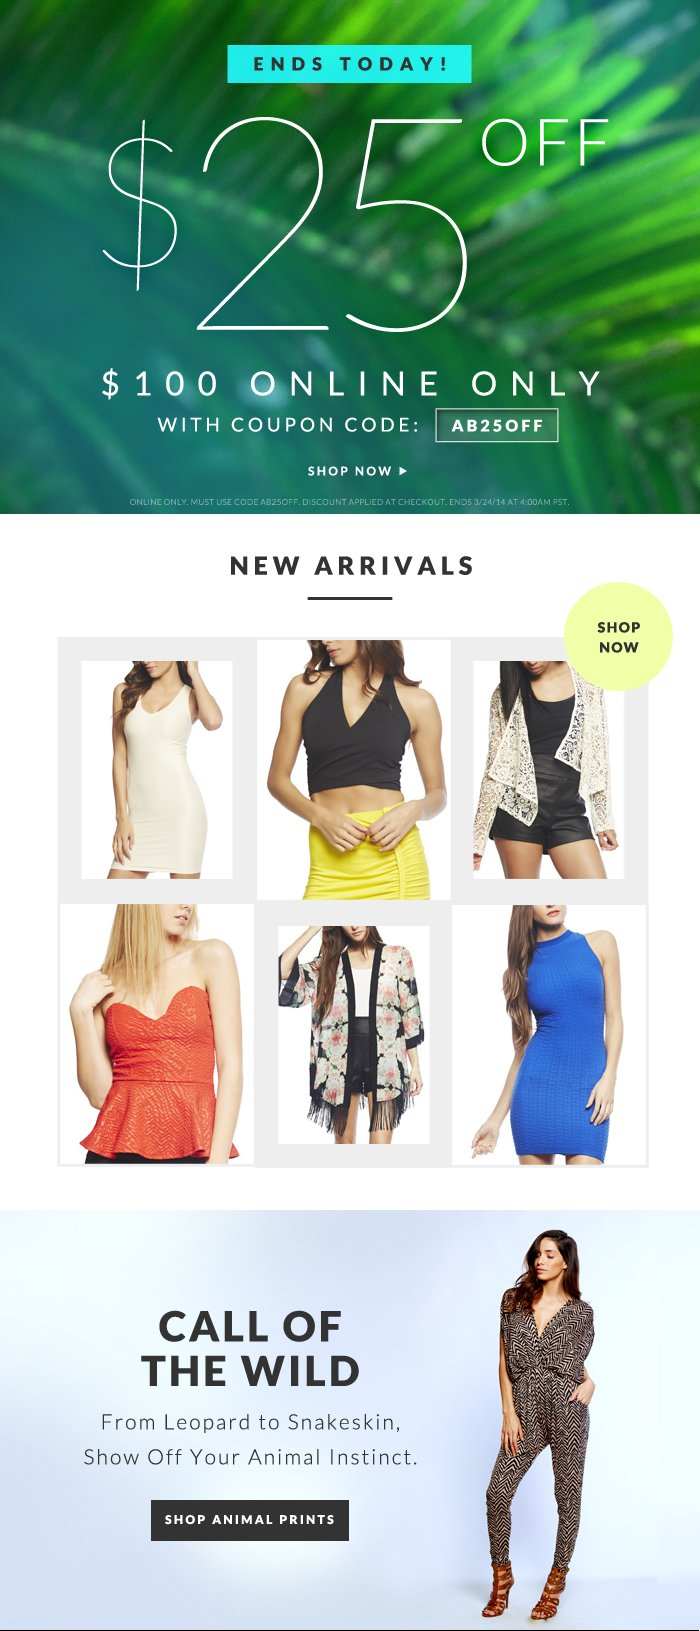 $25 OFF $100 ONLINE ENDS TODAY + NEW ARRIVALS + CALL OF THE WILD